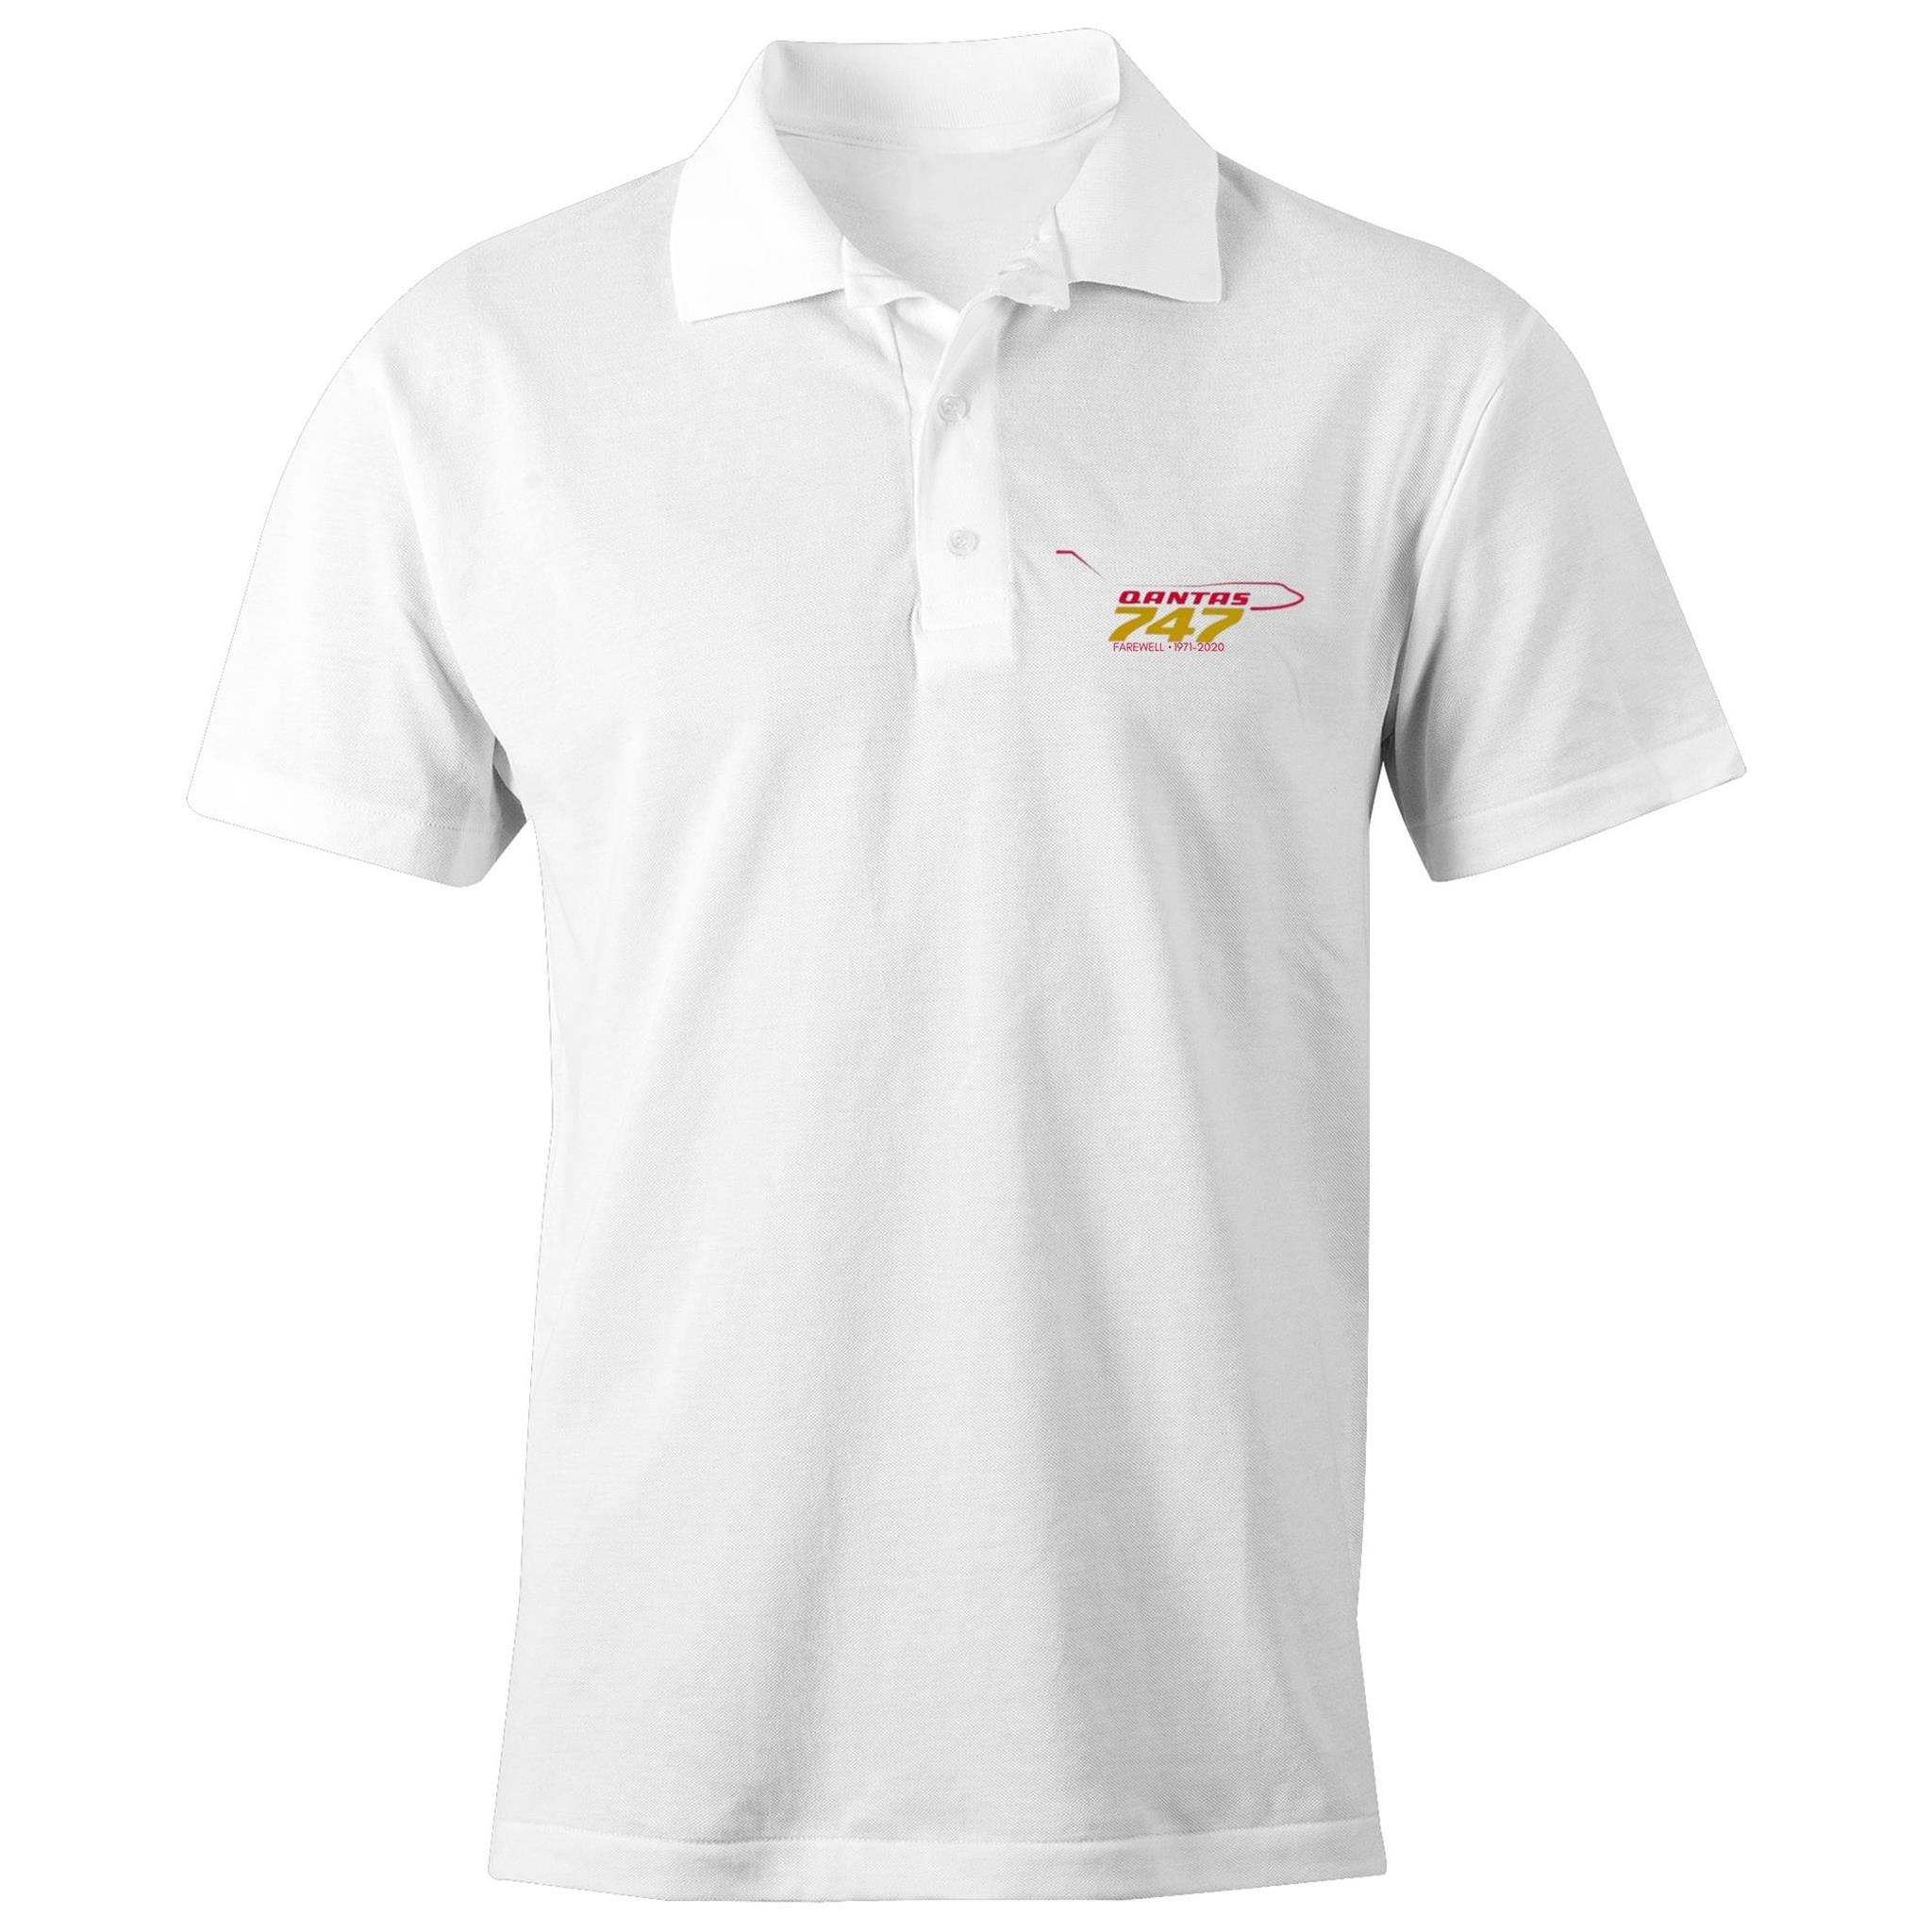 747 FAREWELL - AS Colour Chad - S/S Polo Shirt